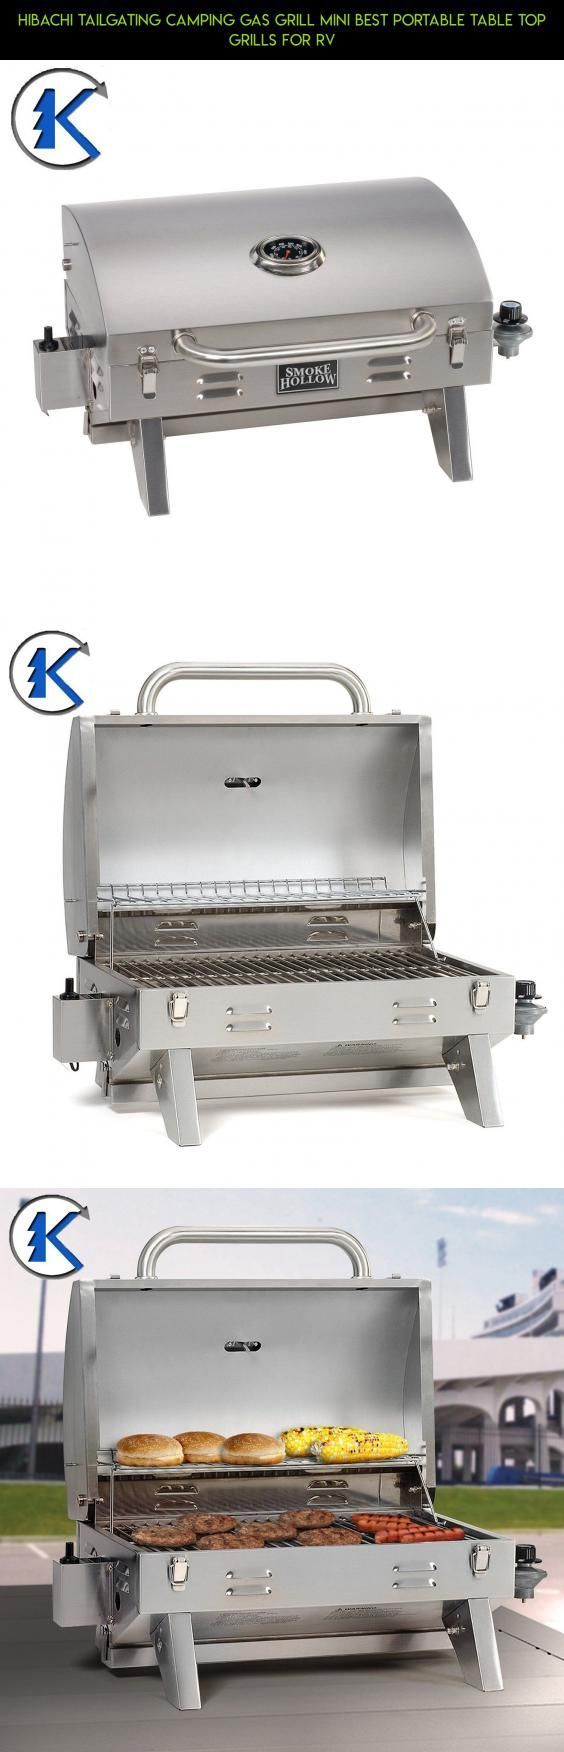 Hibachi Tailgating Camping Gas Grill Mini Best Portable Table Top Grills for RV #technology #camera #grills #drone #plans #kit #shopping #tech #hibachi #parts #fpv #gadgets #racing #products http://grillingideas.org/best-gas-grills/